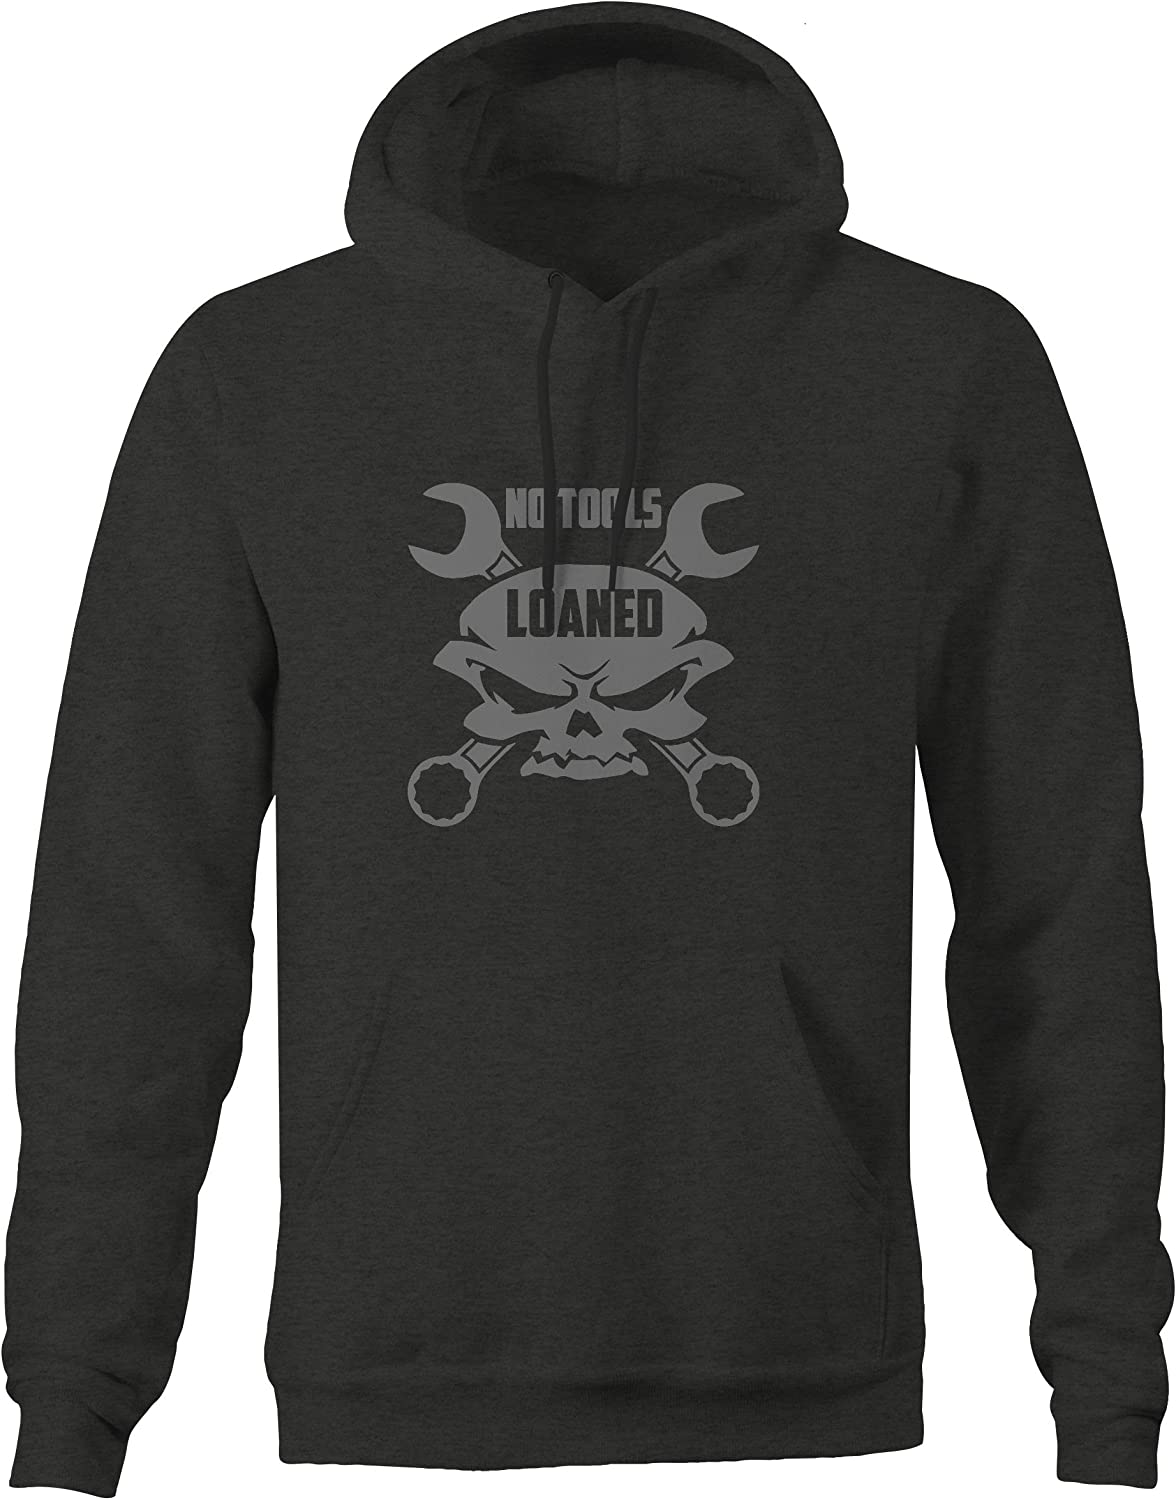 Skull Wrenches Sweatshirt Xlarge No Tools Loaned Stealth